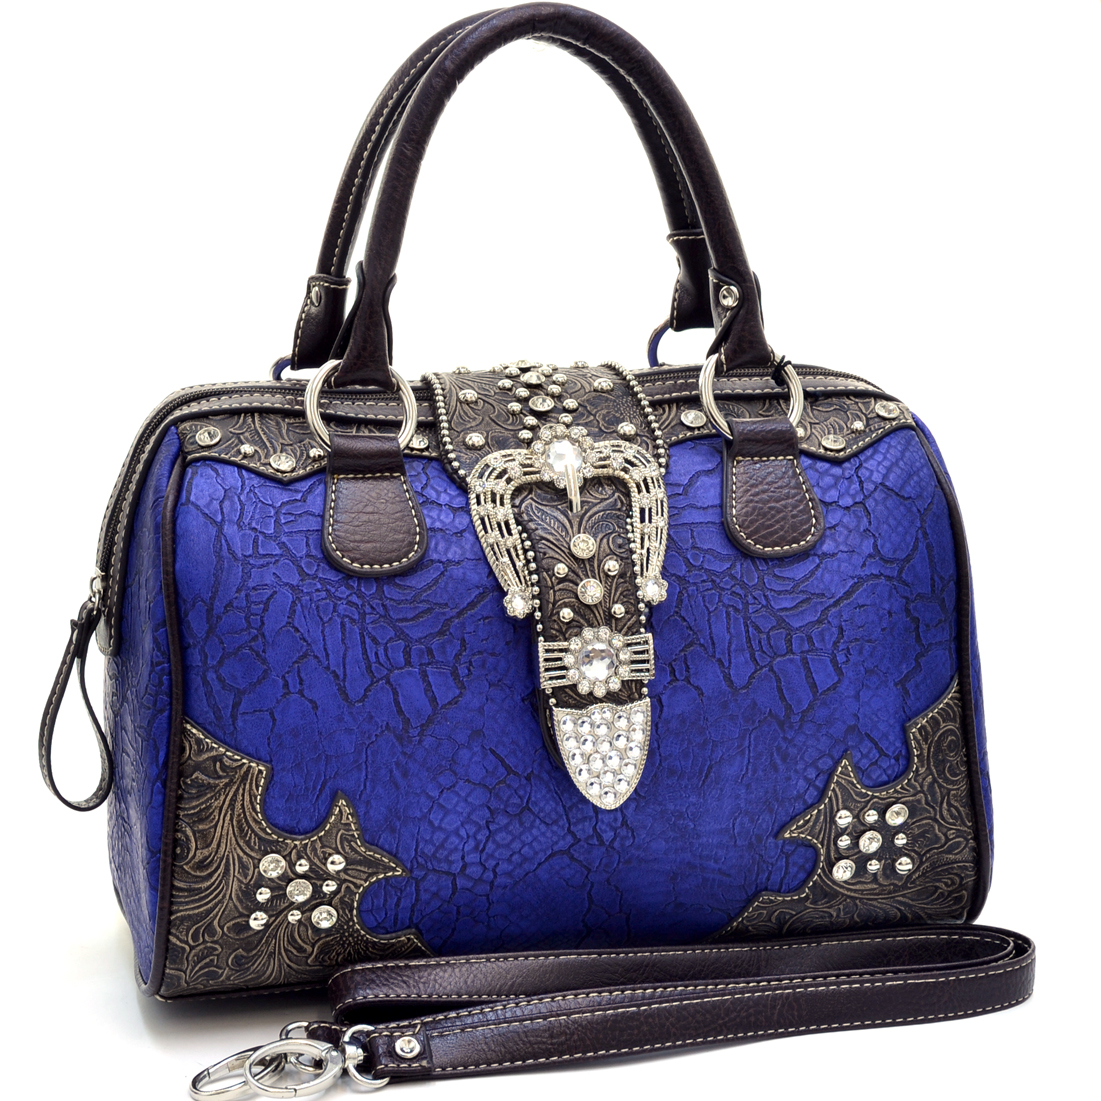 Classic Rhinestone Studded Western Barrel Satchel With Floral Trim